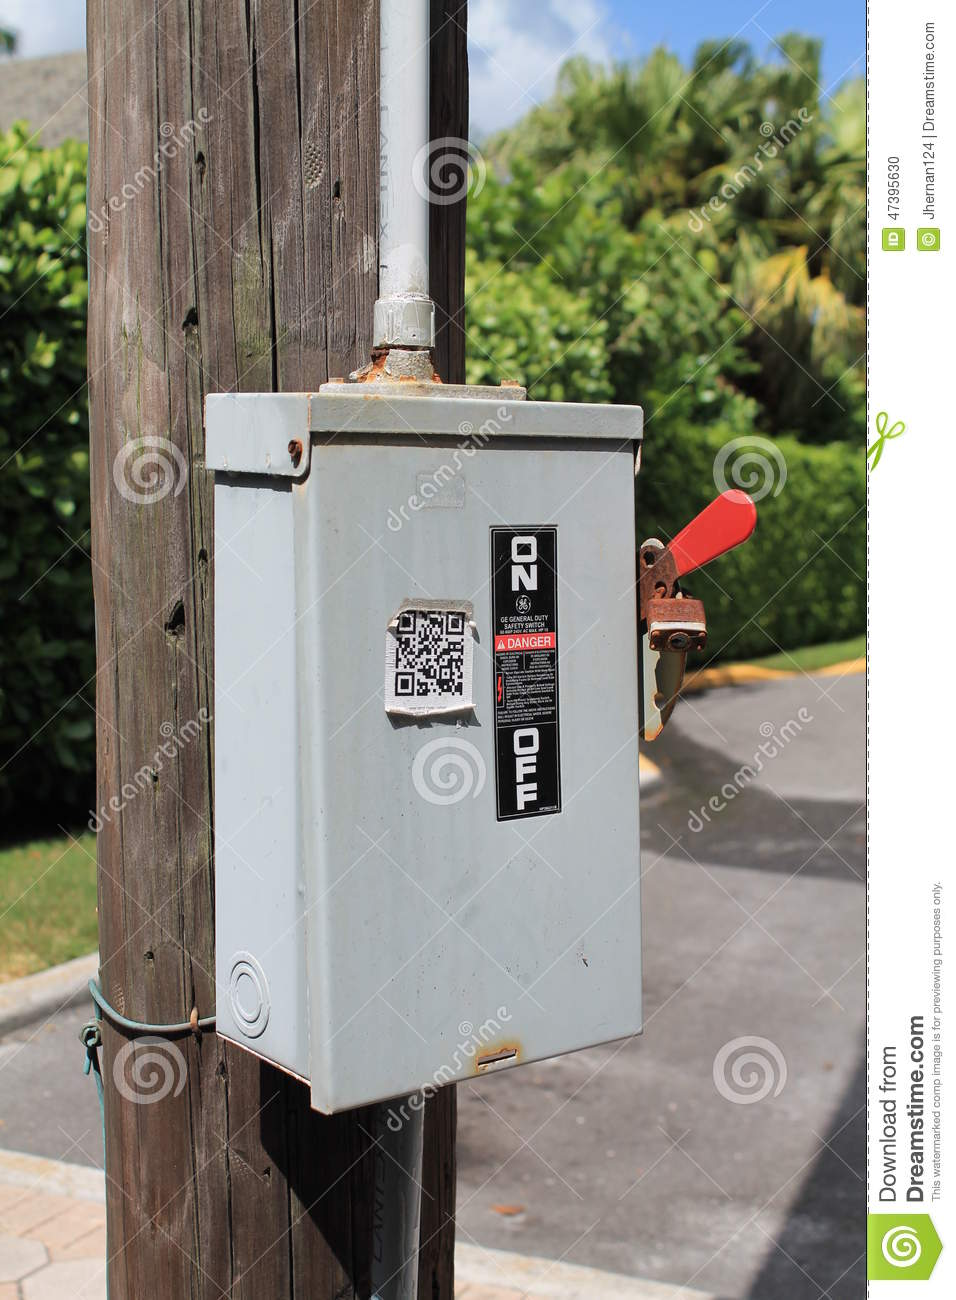 Power box outside stock photo Image of electric cutout